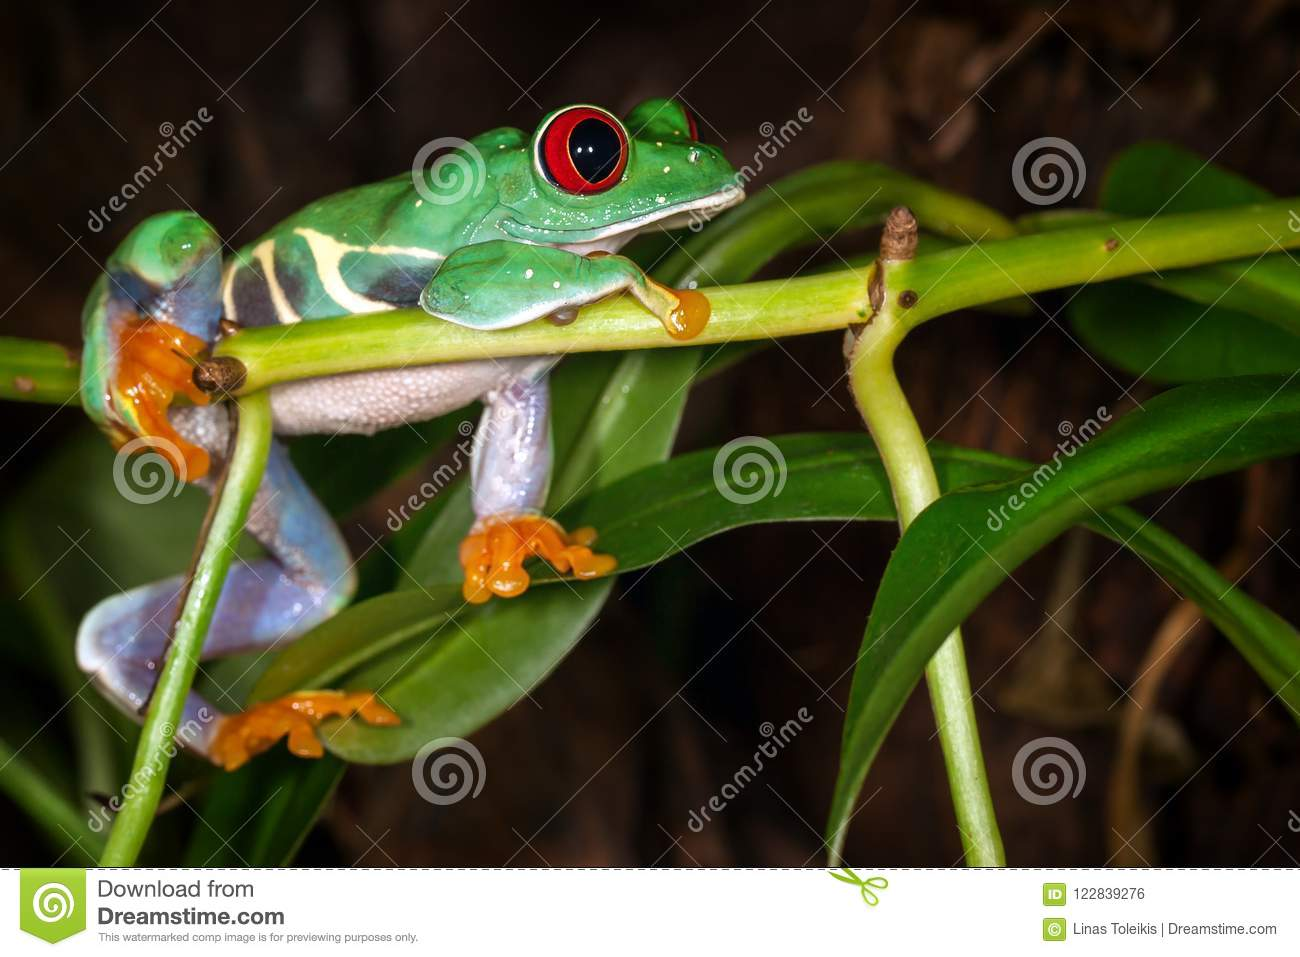 The red eyed tree frog dreaming about cricket